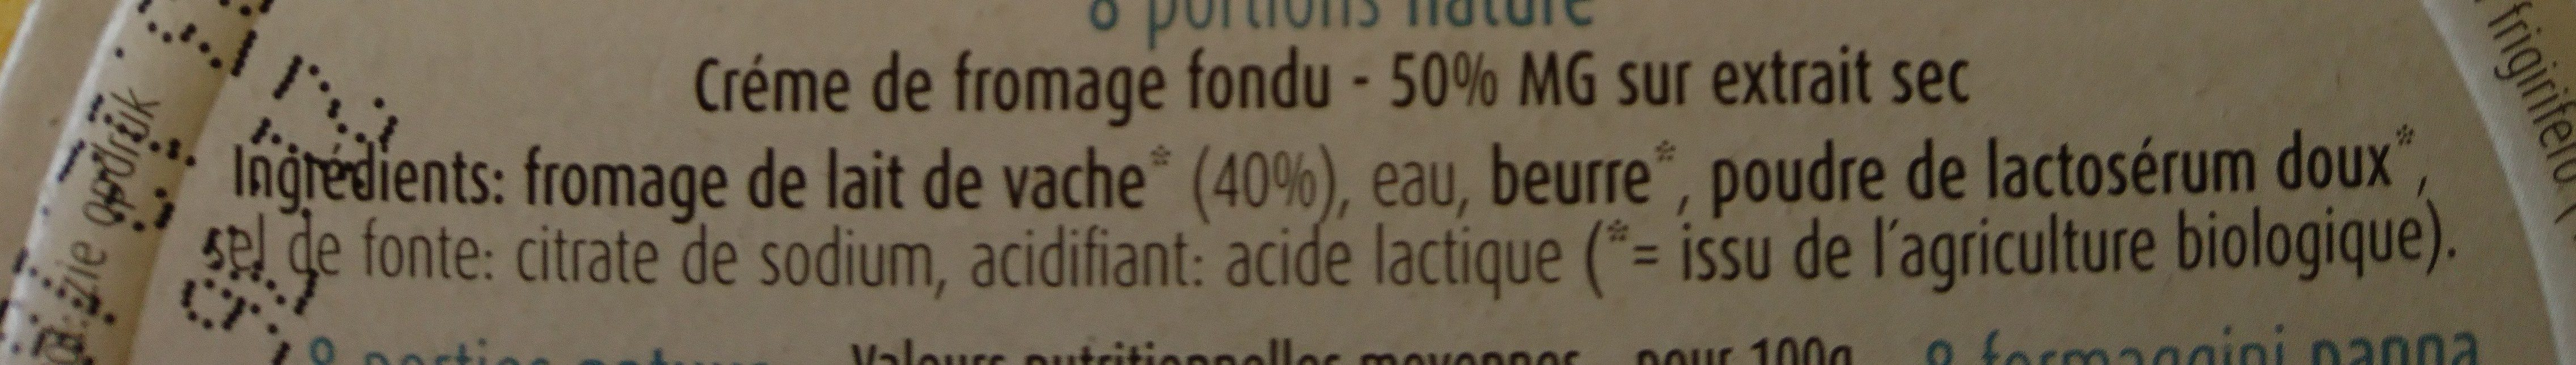 Petit fondu bio - Ingredients - fr